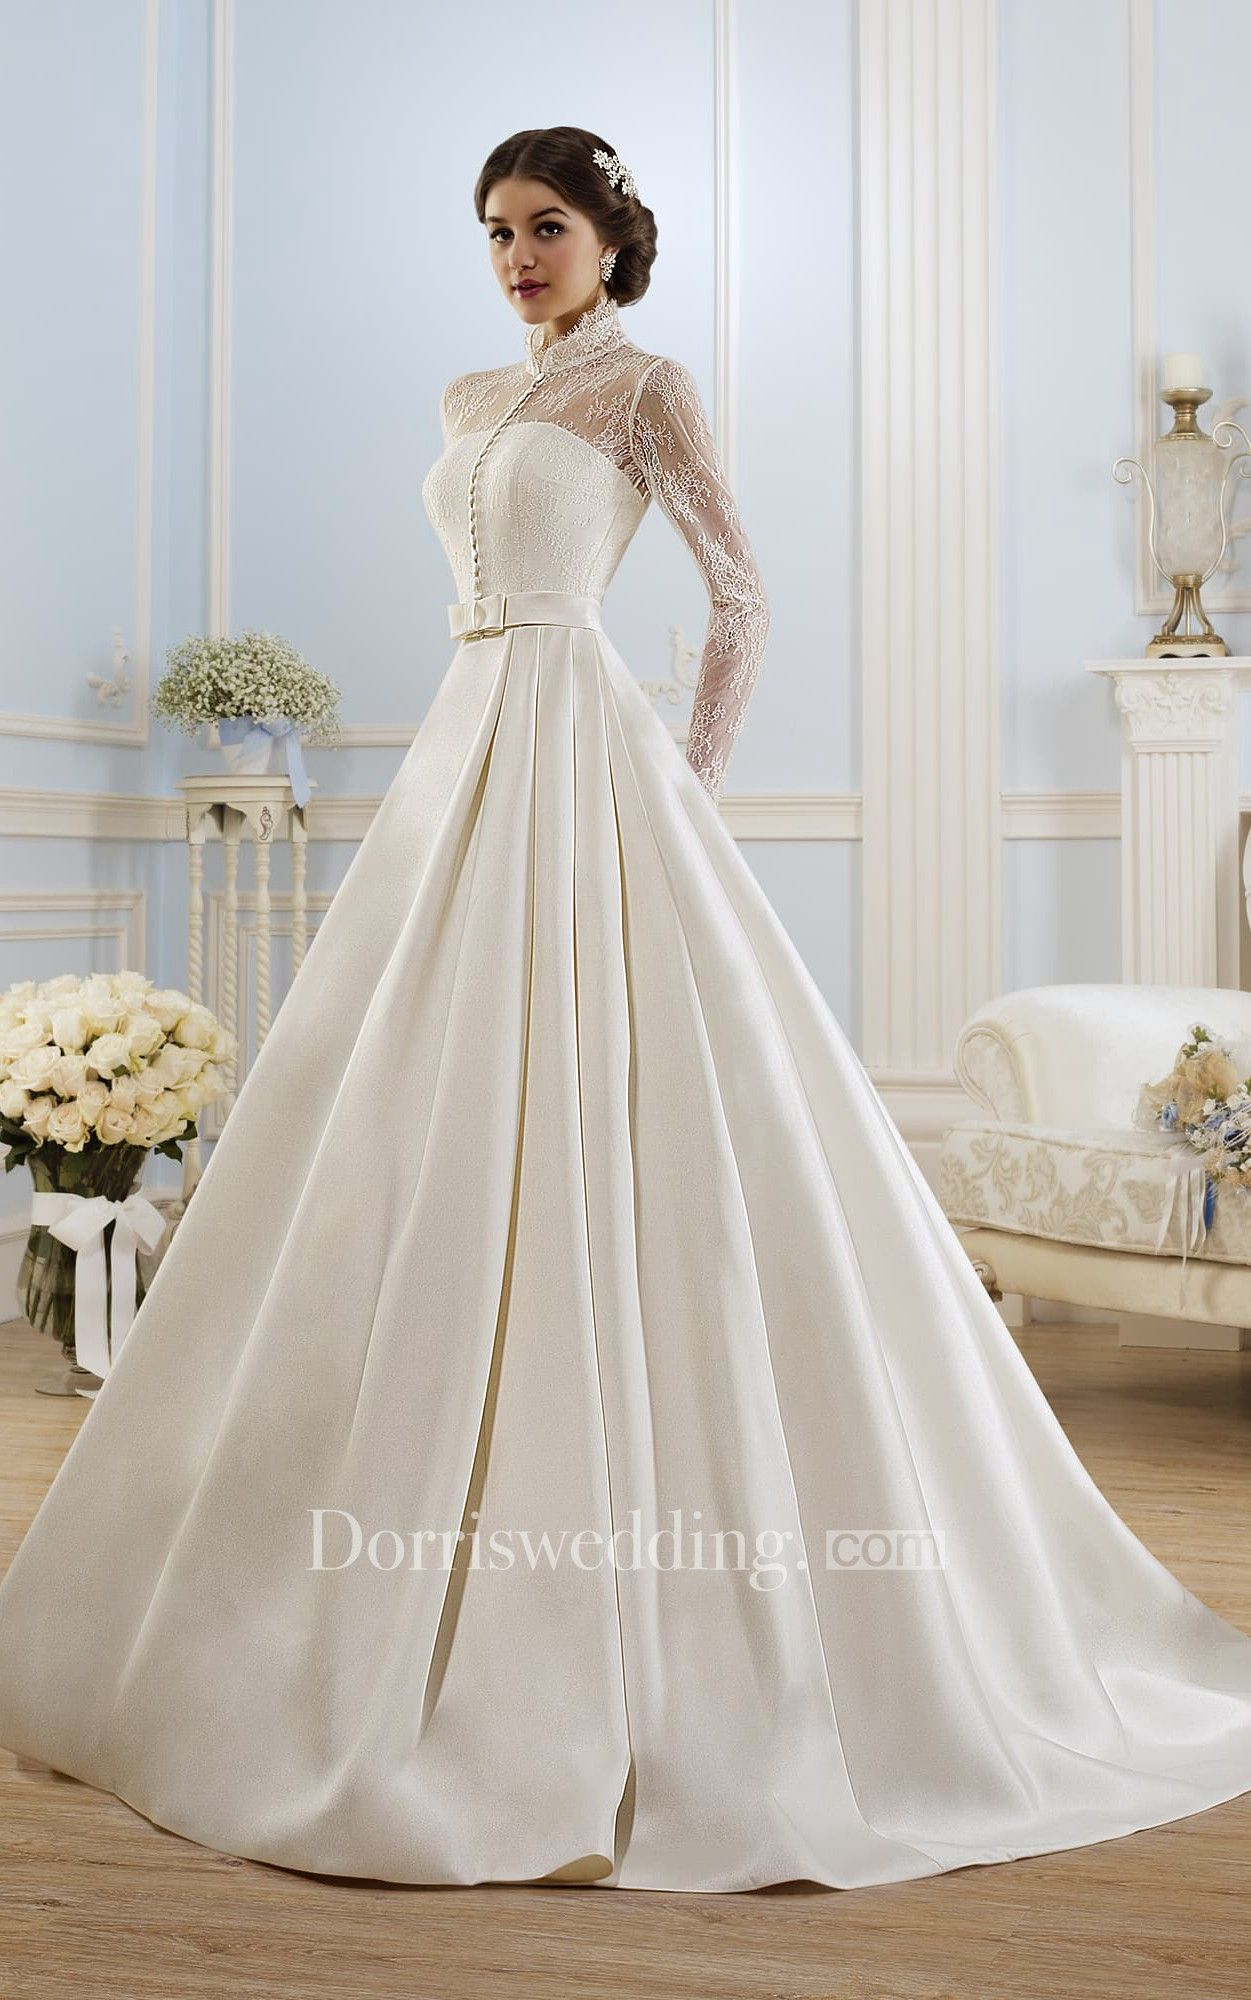 Ball gown long highneck longsleeve illusion satin dress with lace